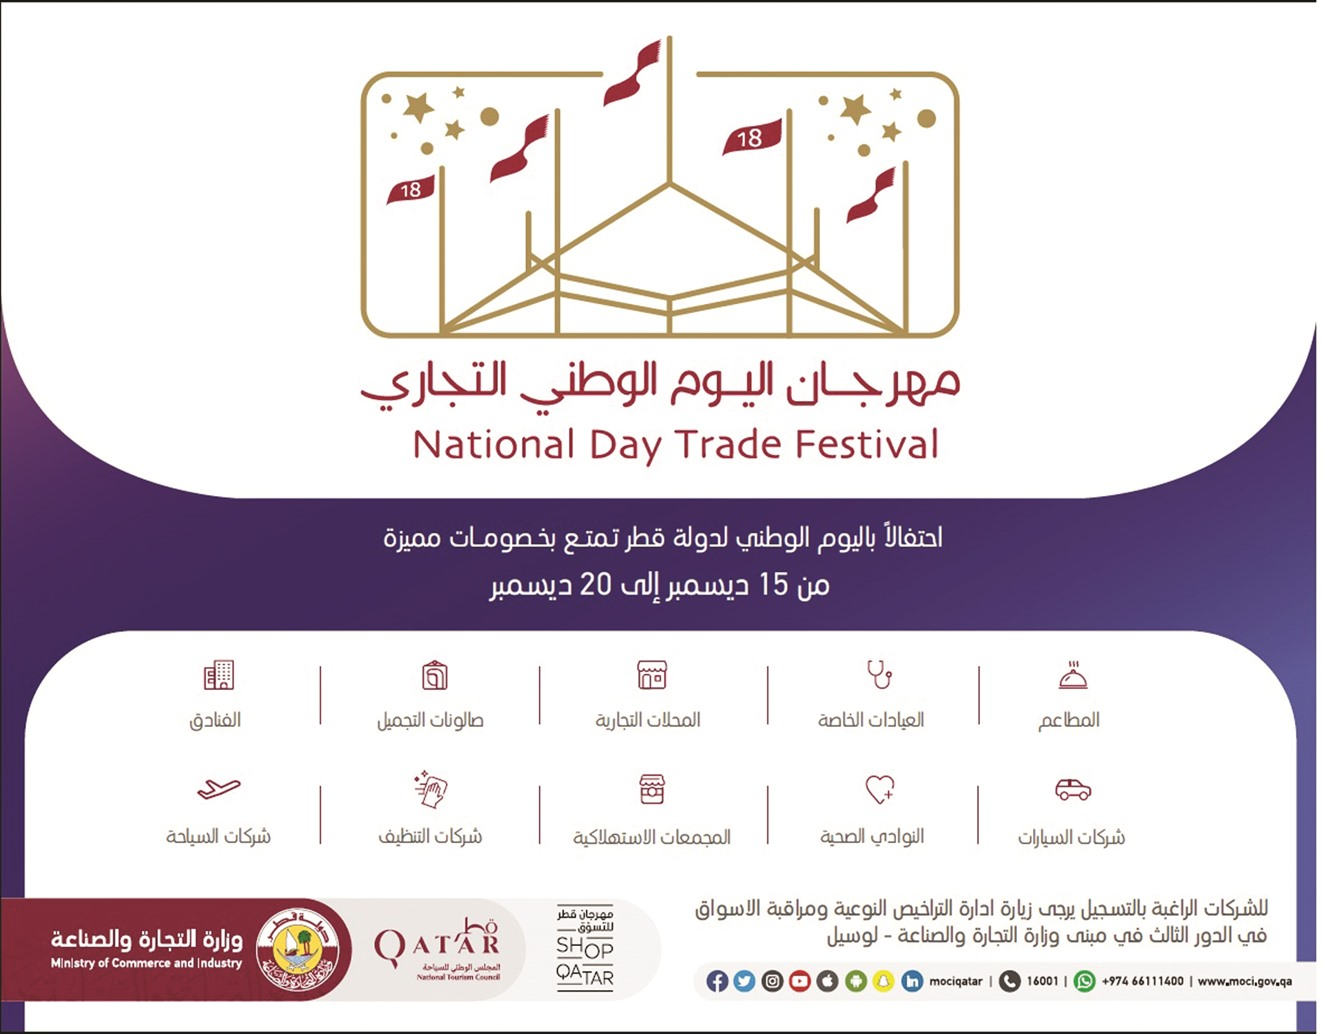 National Day Trade Festival to begin from December 15